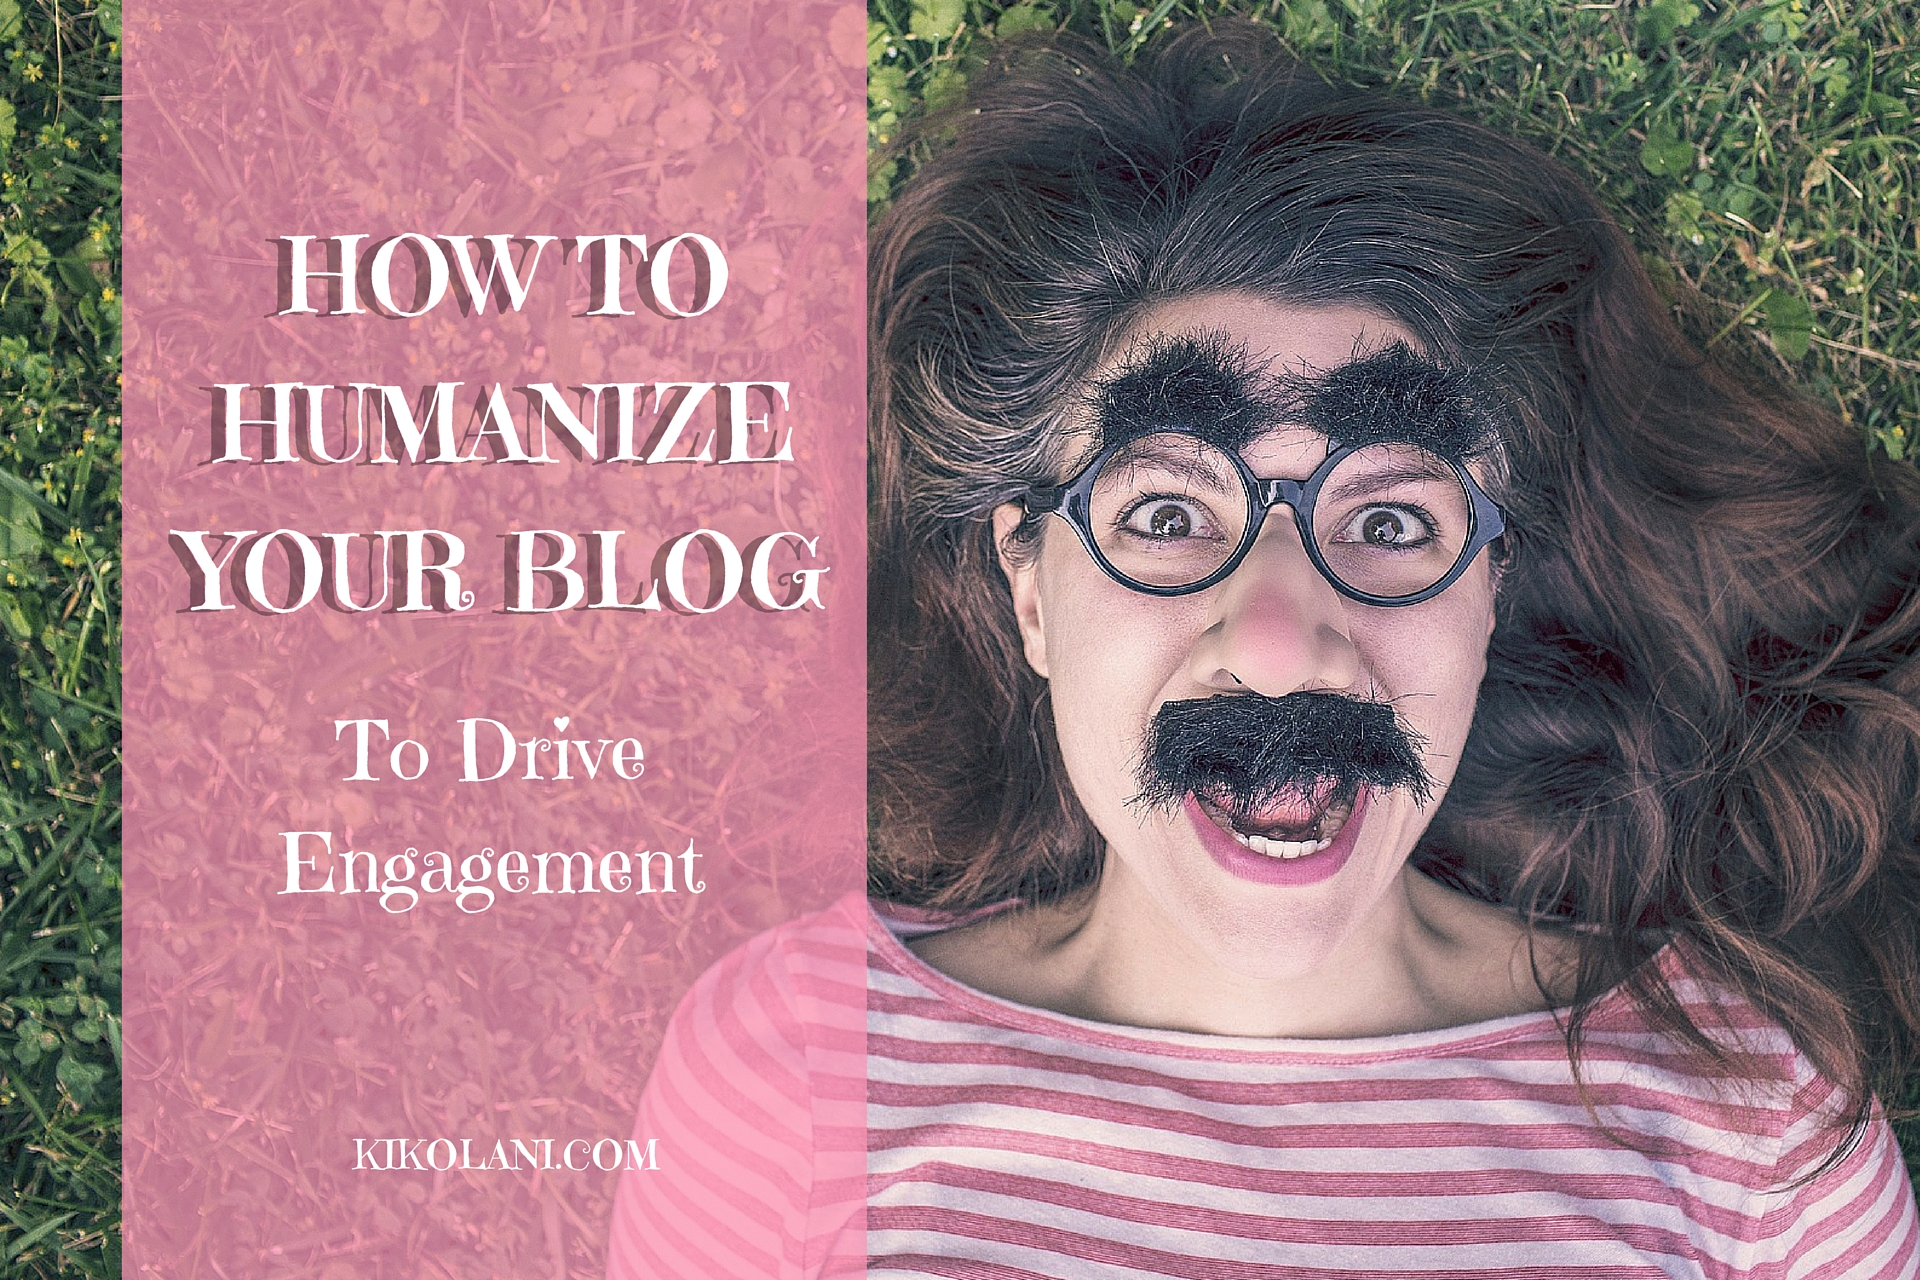 HOW TO HUMANIZE YOUR BLOG